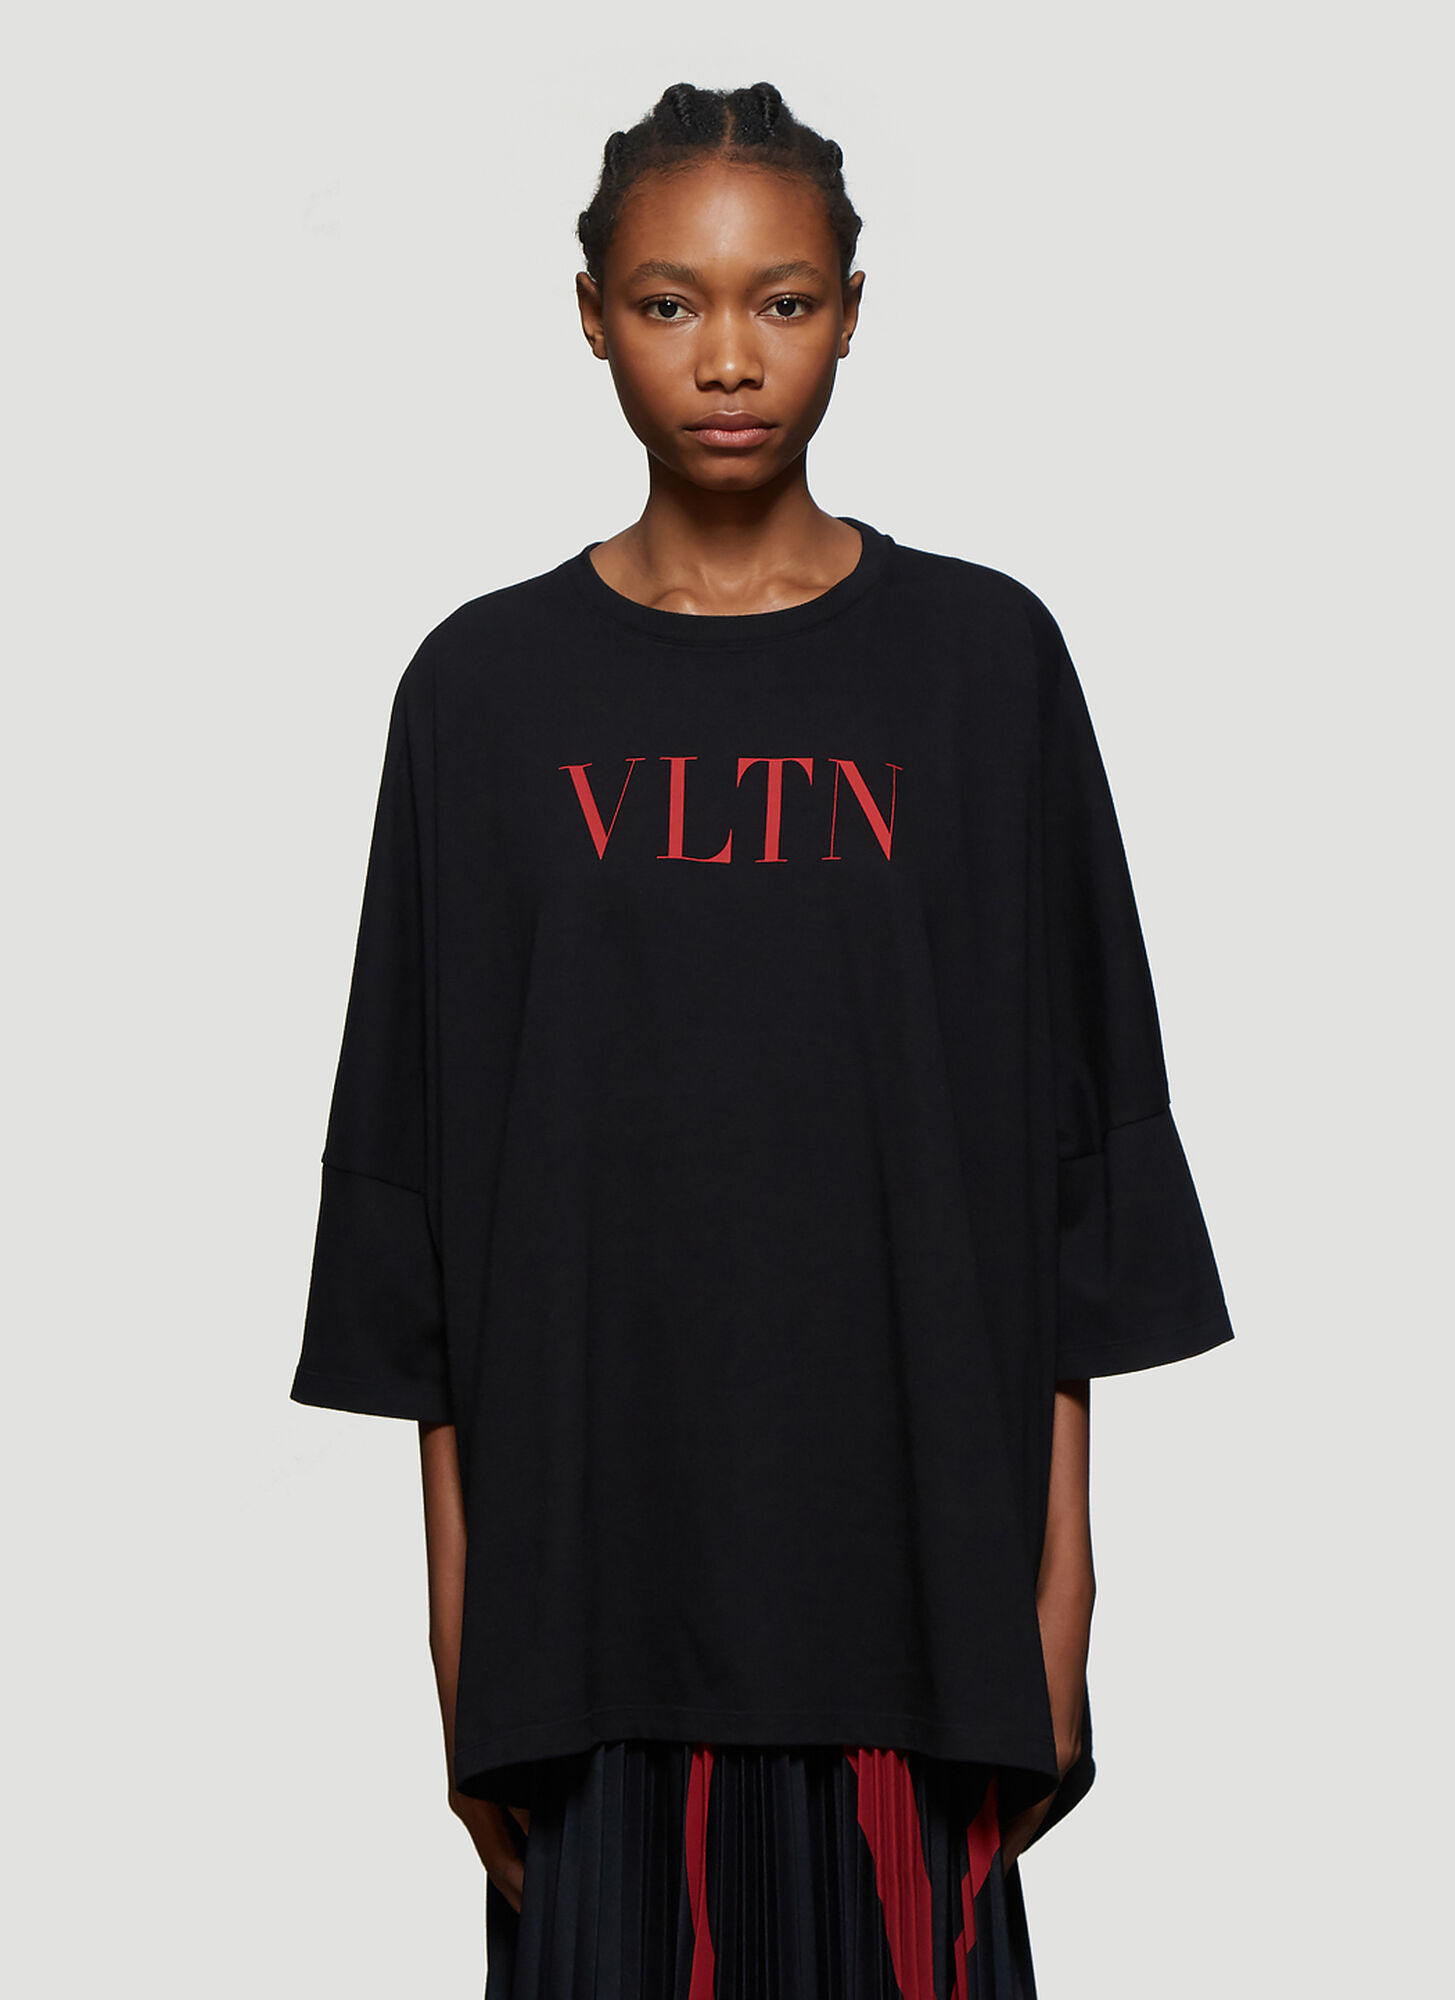 Photo of Valentino VLTN Oversized T-Shirt in Black - Valentino T-Shirts